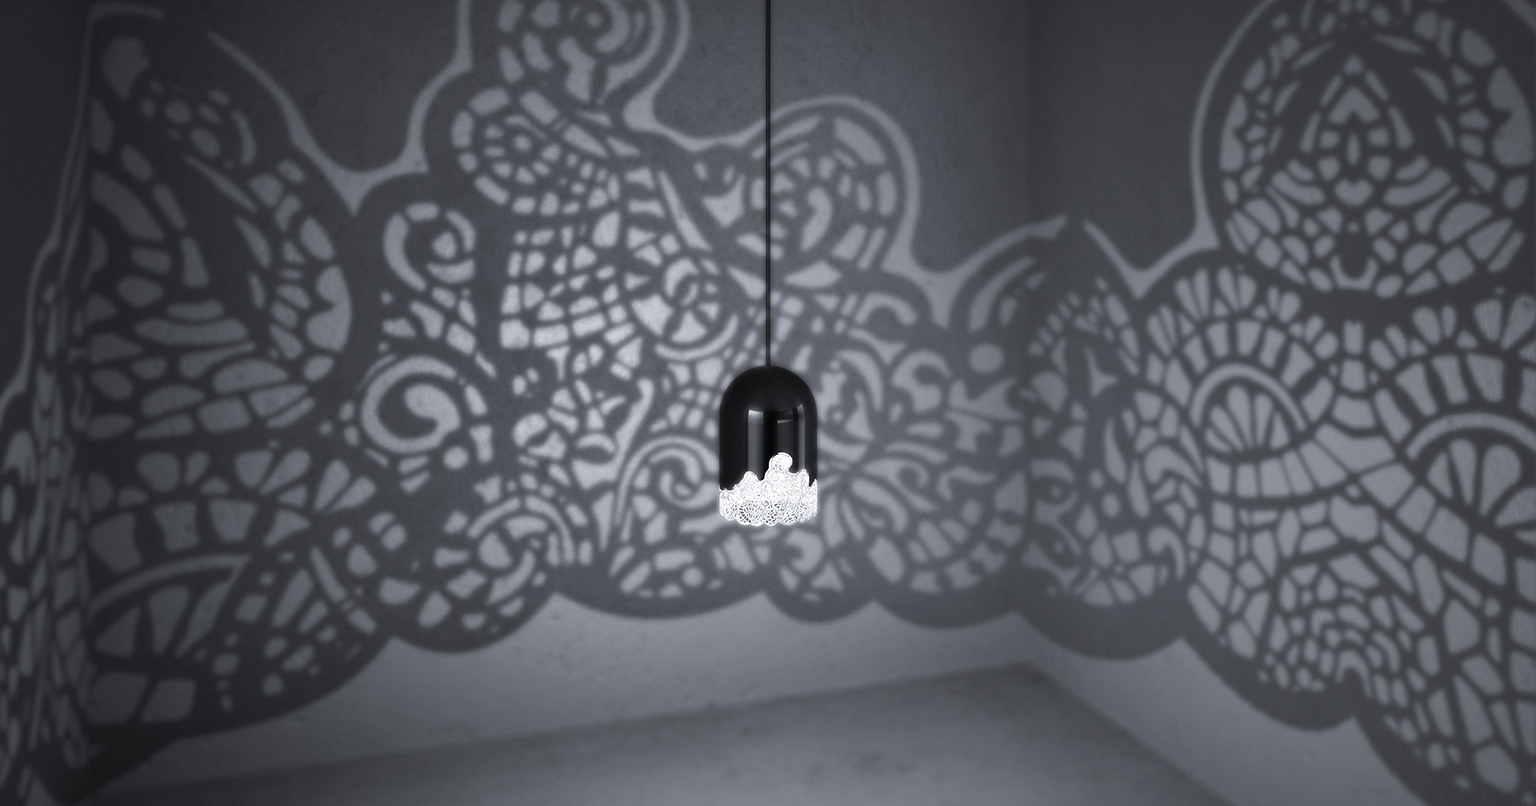 This 3D-Printed Lamp Turns Any Room Into A Wonderland